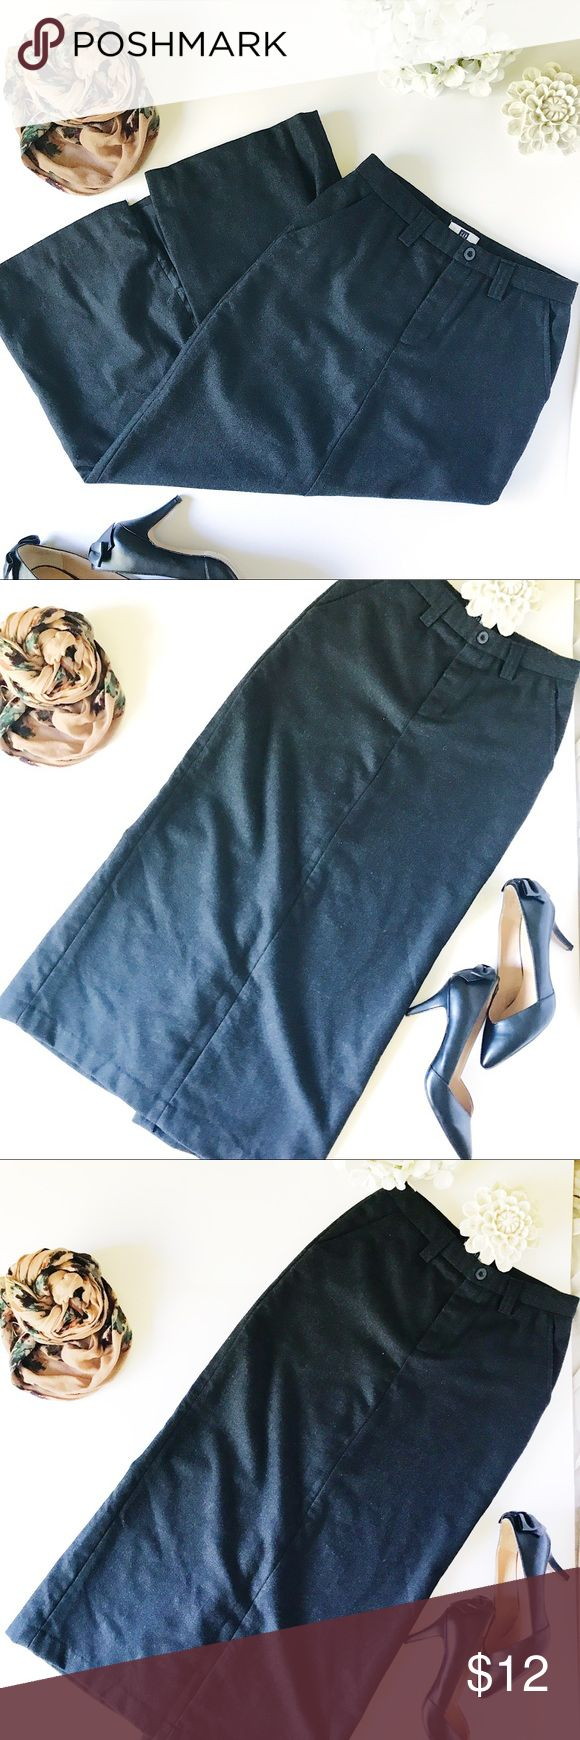 Gap Long Maxi Wool Skirt with Split This maxiskirt has a split in the back. It's heavy so it's so perfect for the cooler fall winter months that are upcoming. Don't miss this skirt! Gray color slit is 16 1/2 inches GAP Skirts Maxi